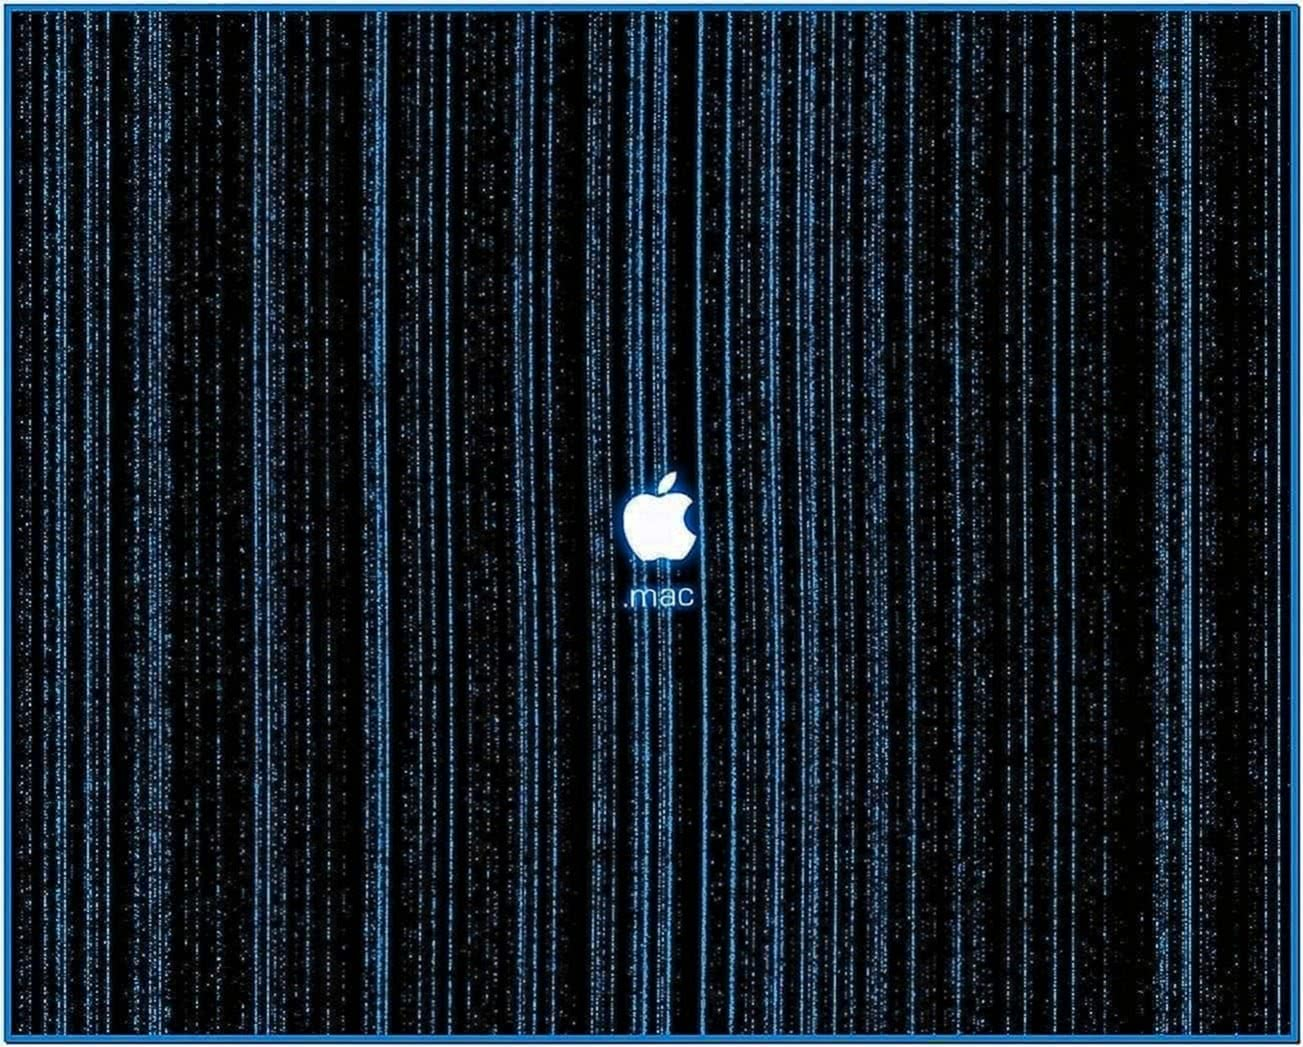 Matrix Screensaver Apple Mac